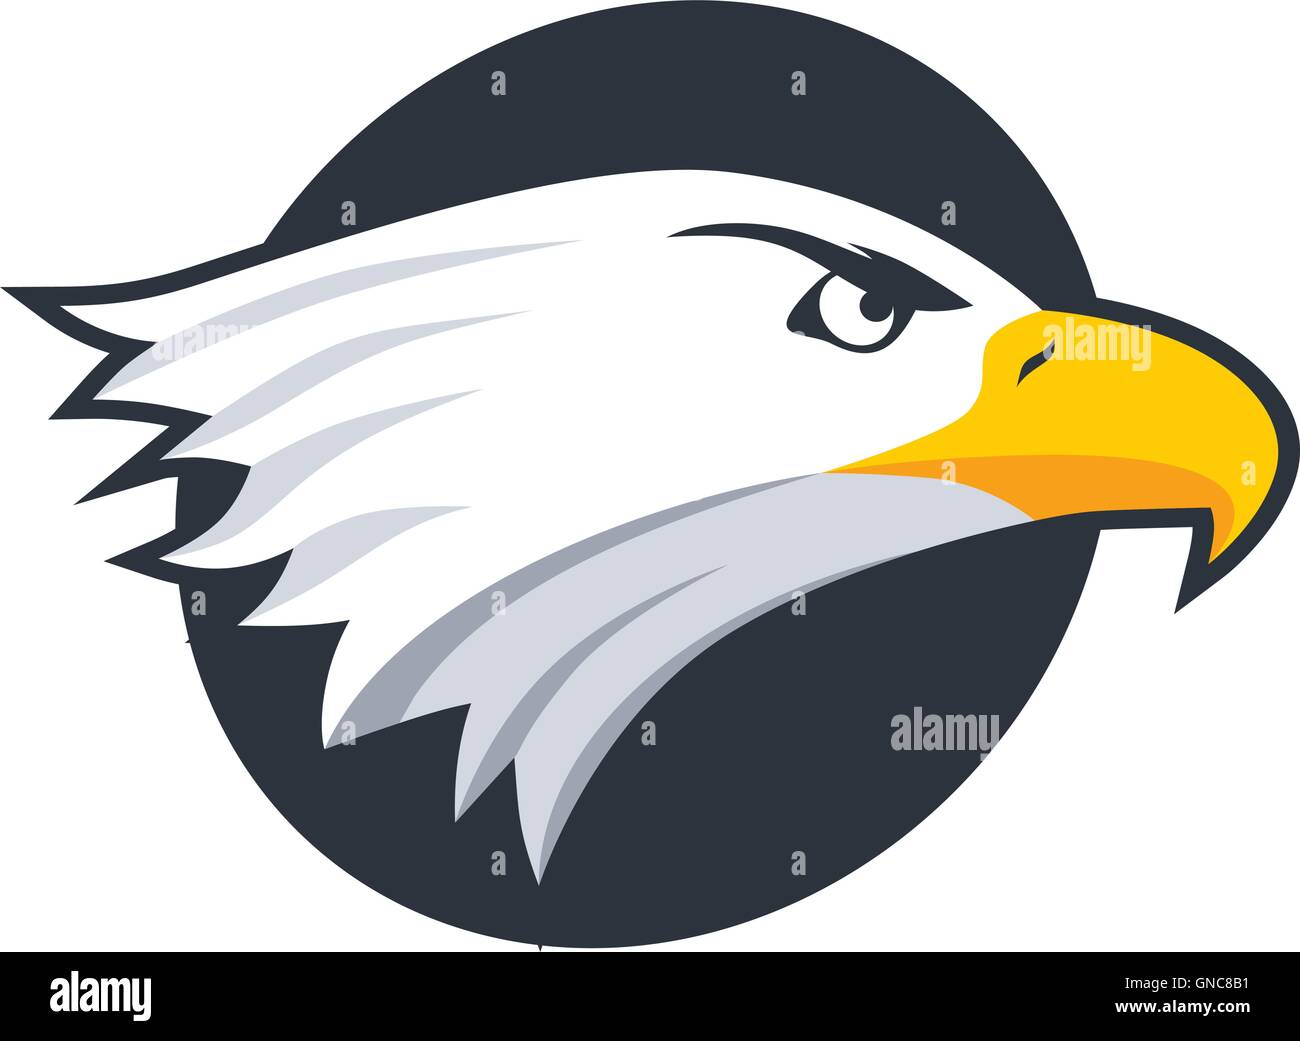 bold eagle template stock vector art illustration vector image